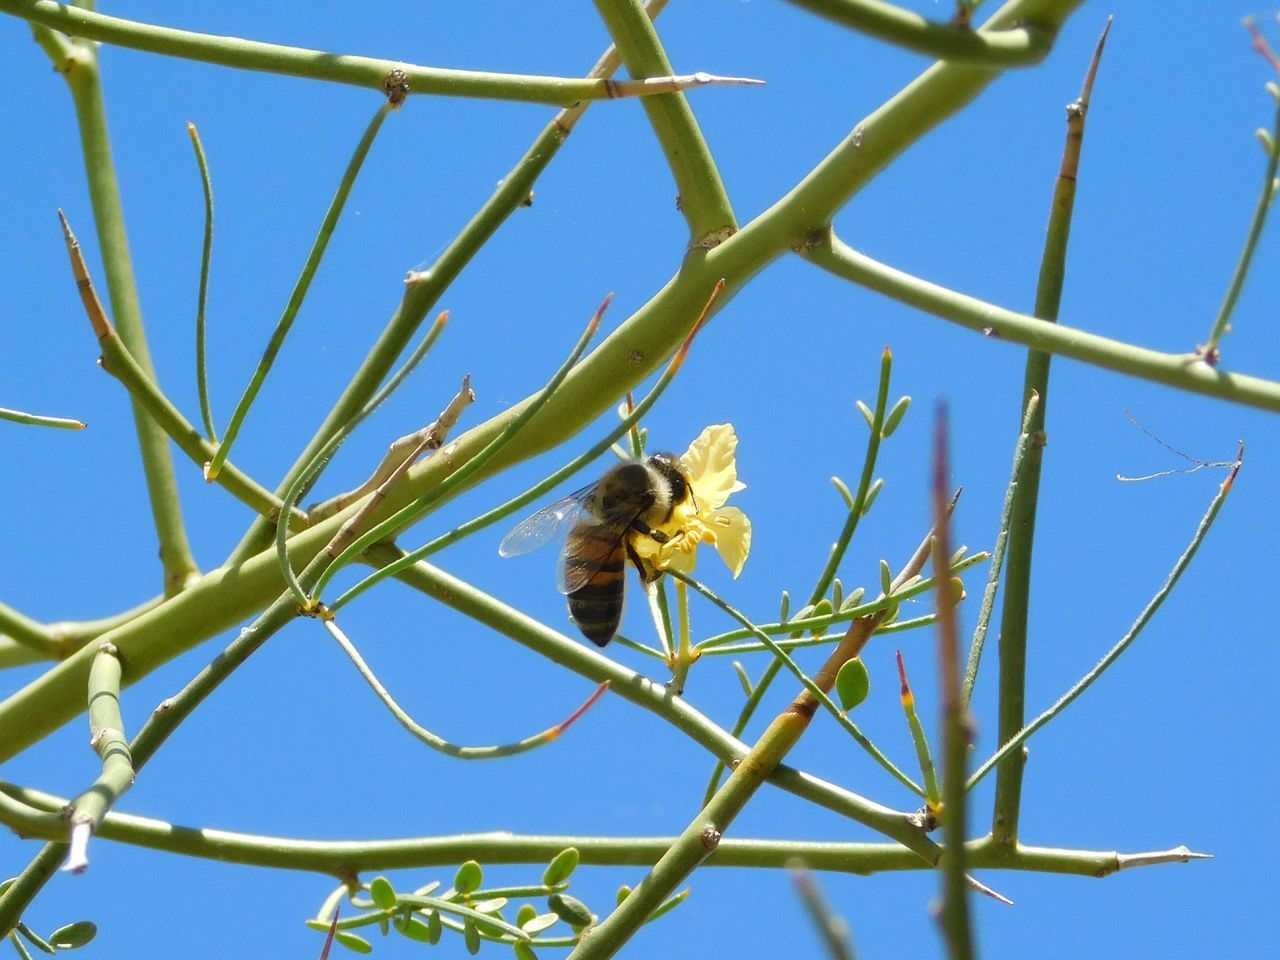 Bee Animal Wildlife Animals In The Wild Blue Outdoors No People Day Bird Sky Tree Nature Animal Themes Perching Close-up